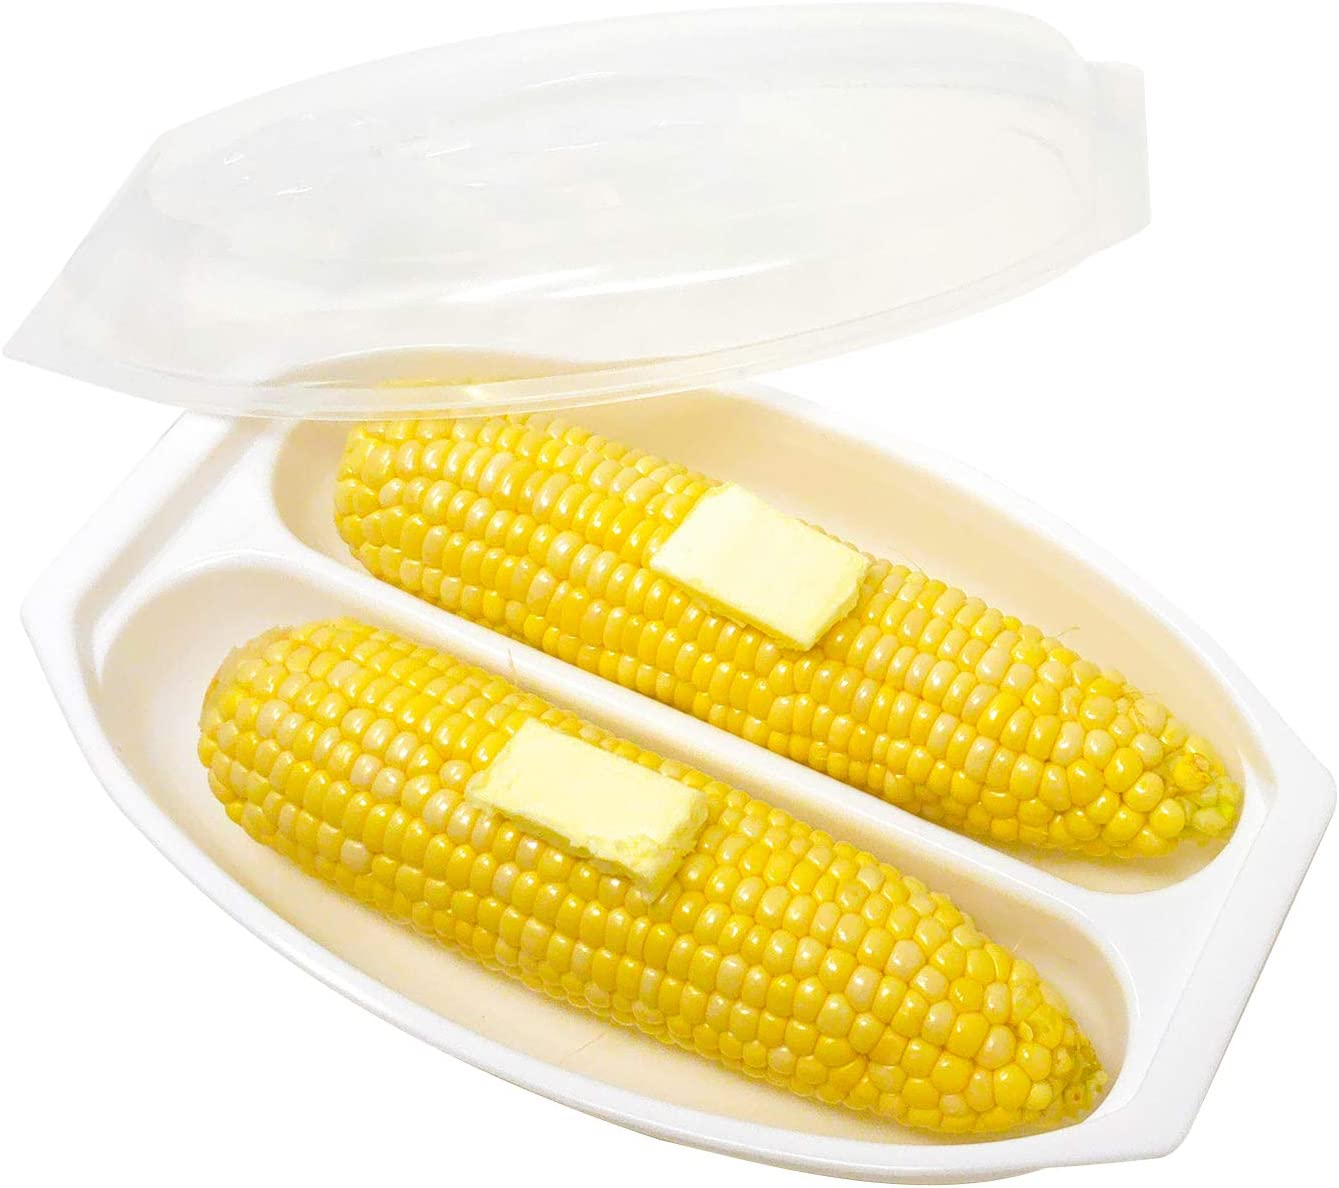 Massca Ultimate Microwave Corn Steamer For Quick & EasyCorn On The Cob| Dual Vegetable Cooker With Vented Lid & Handle | BPA-Free Plastic Veggie Steamer | Dishwasher-Safe | Perfect Gift.